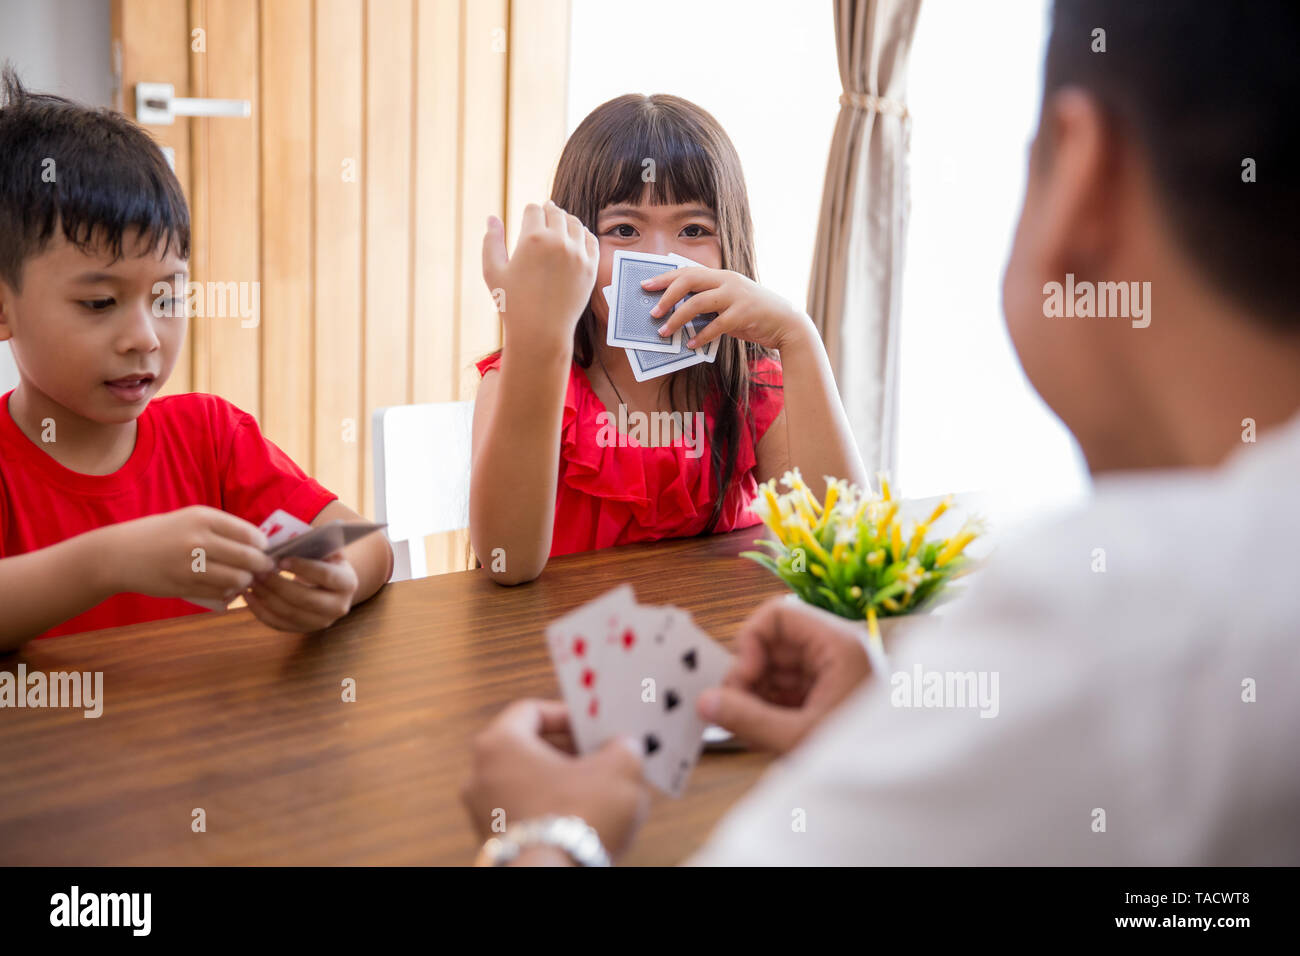 kids play card game together Stock Photo